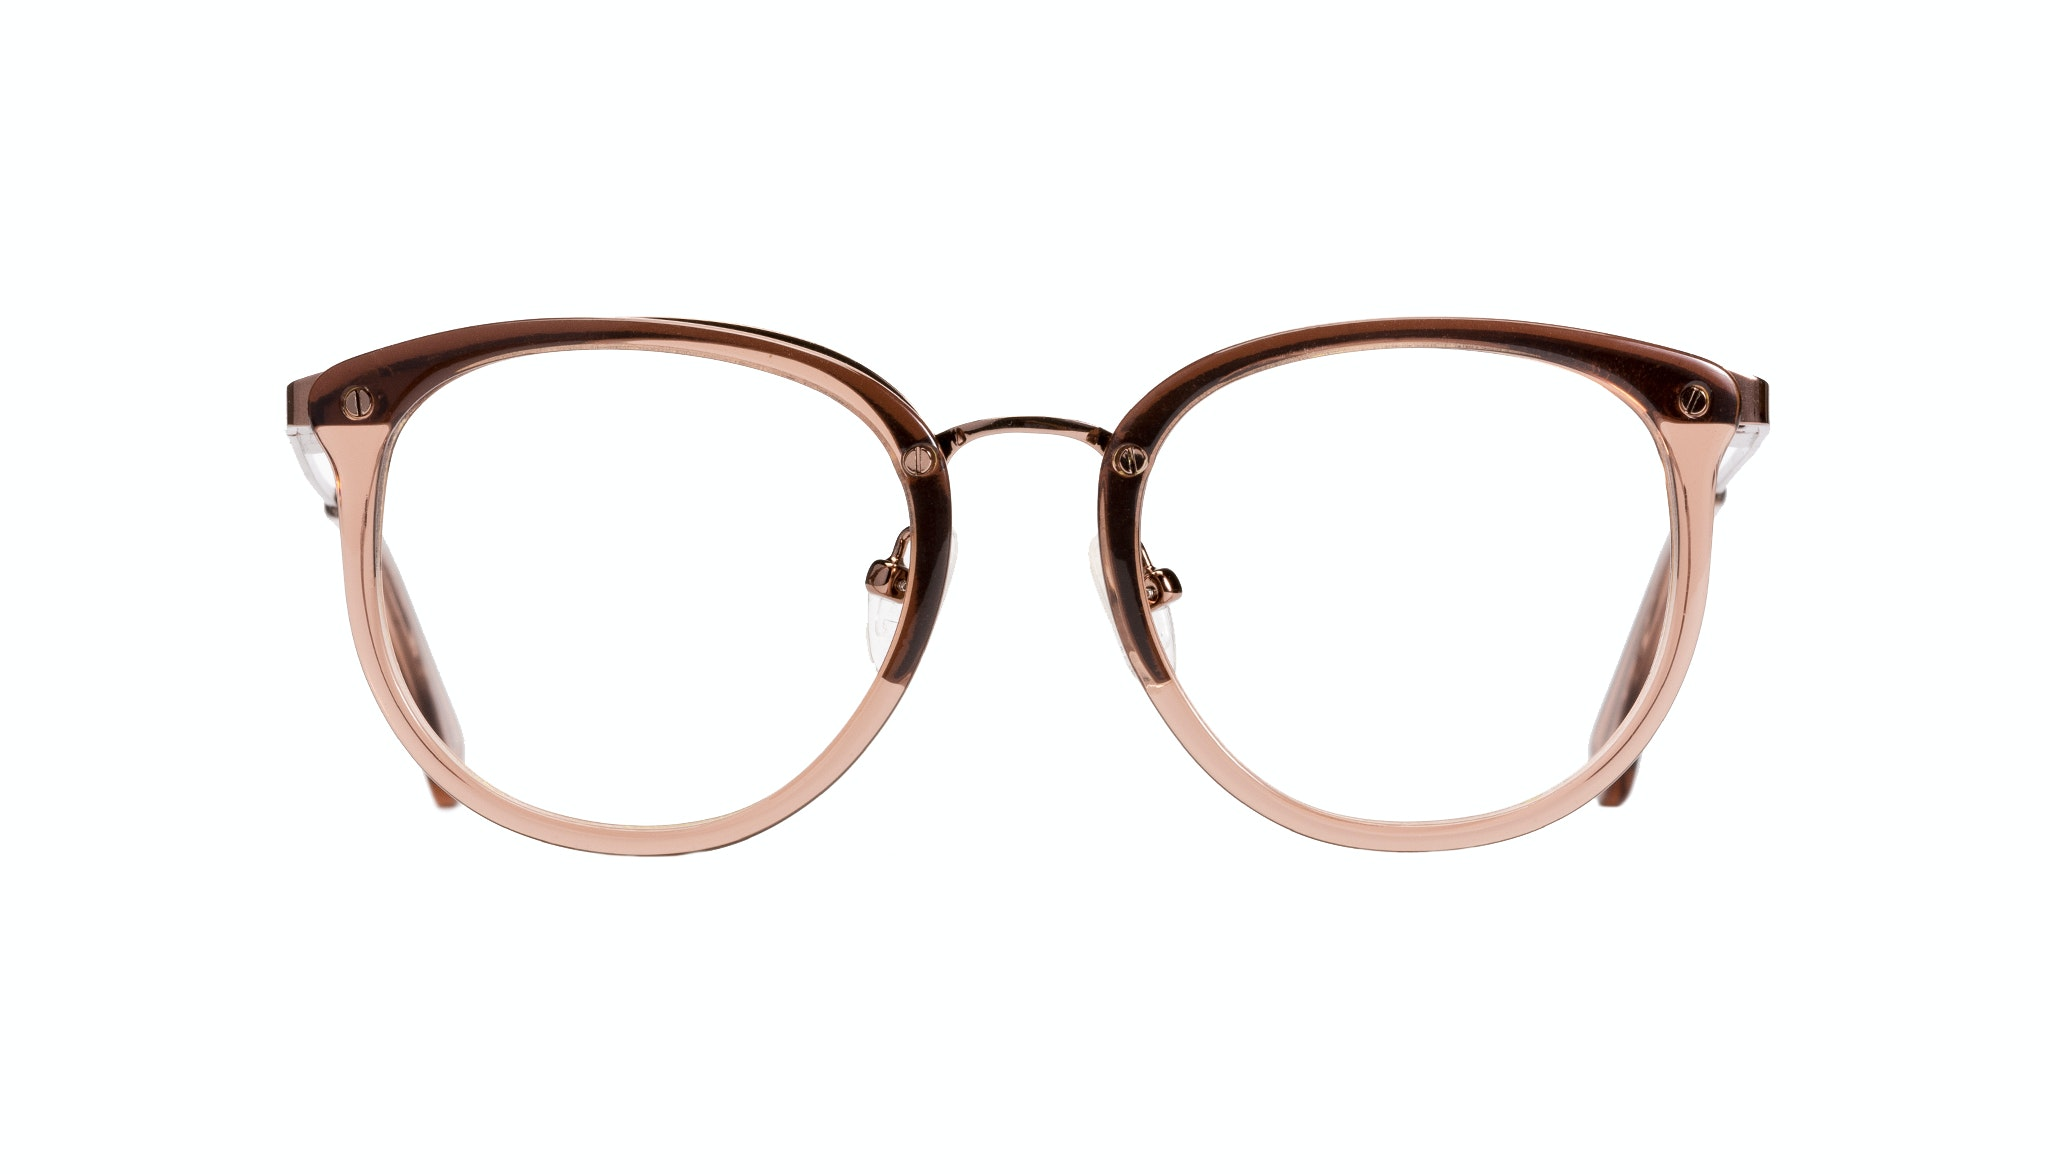 Affordable Fashion Glasses Round Eyeglasses Women Amaze Petite Rose